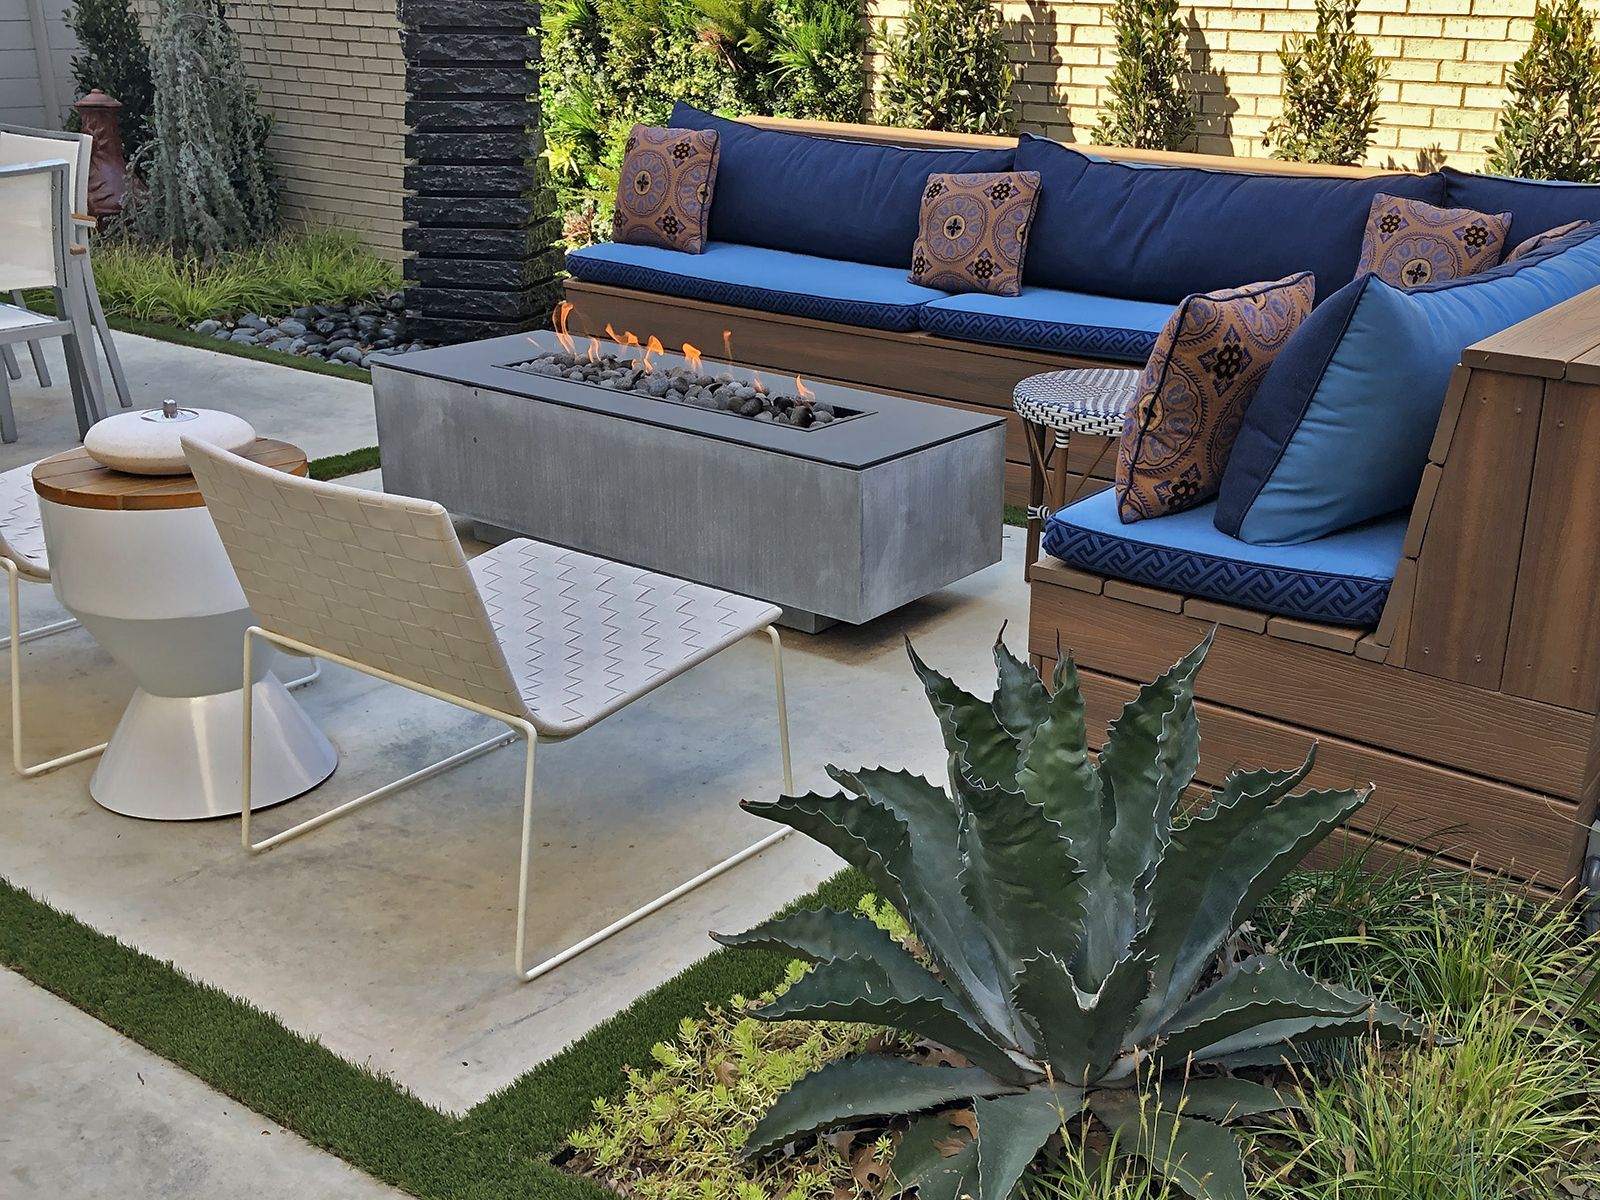 ddla-design-uptown-outdoor-courtyard.jpg